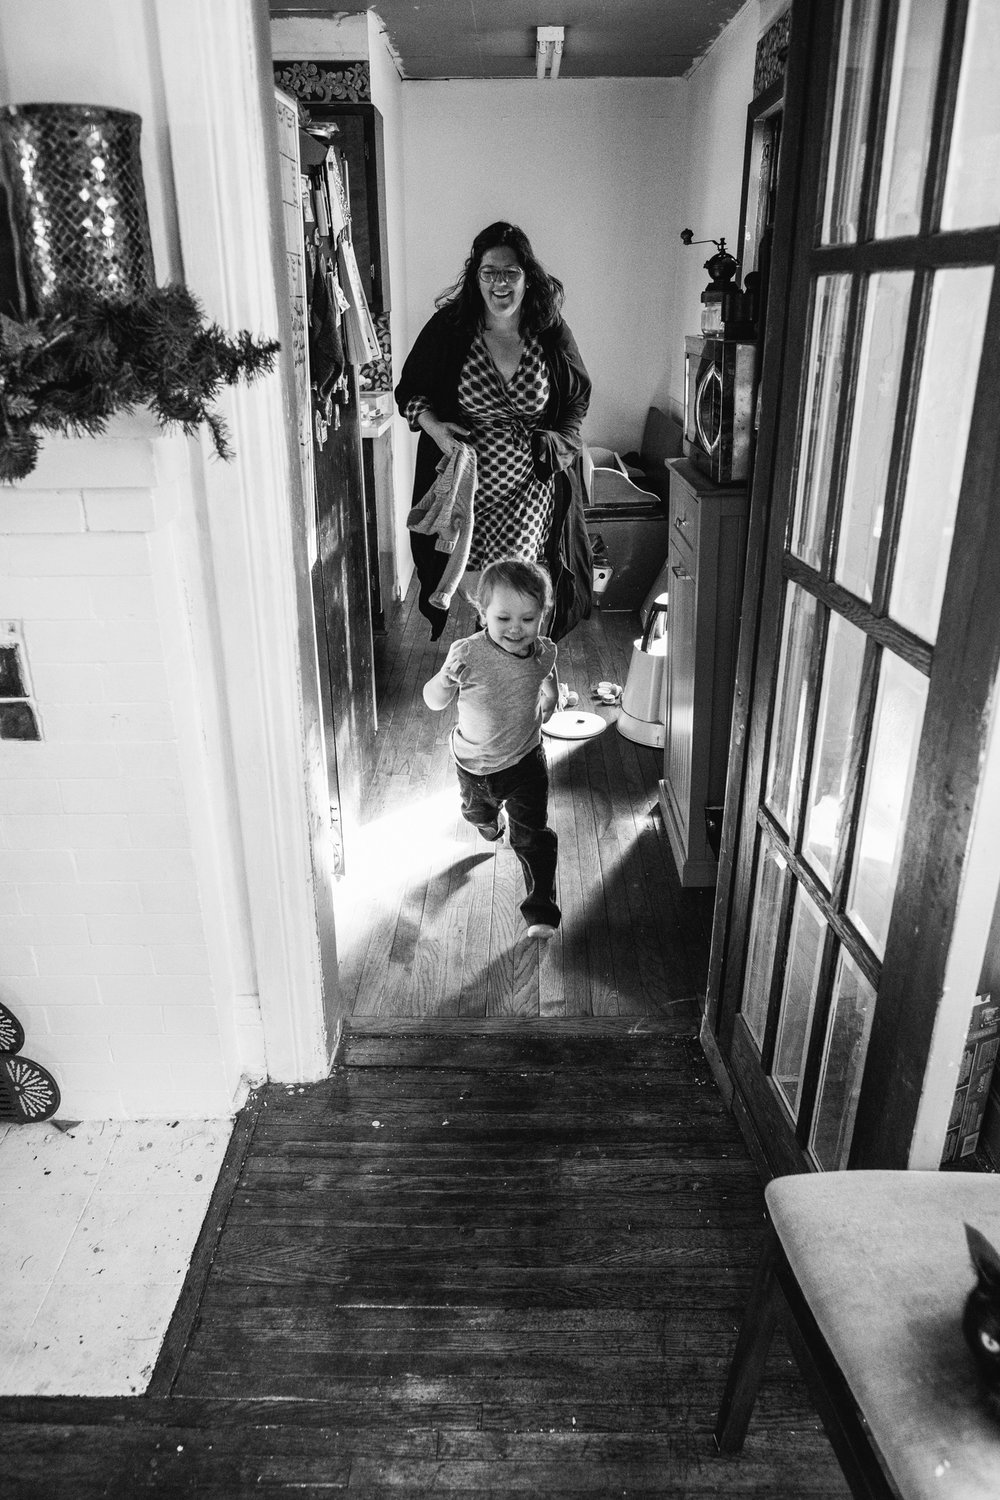 Little girl running from mom.